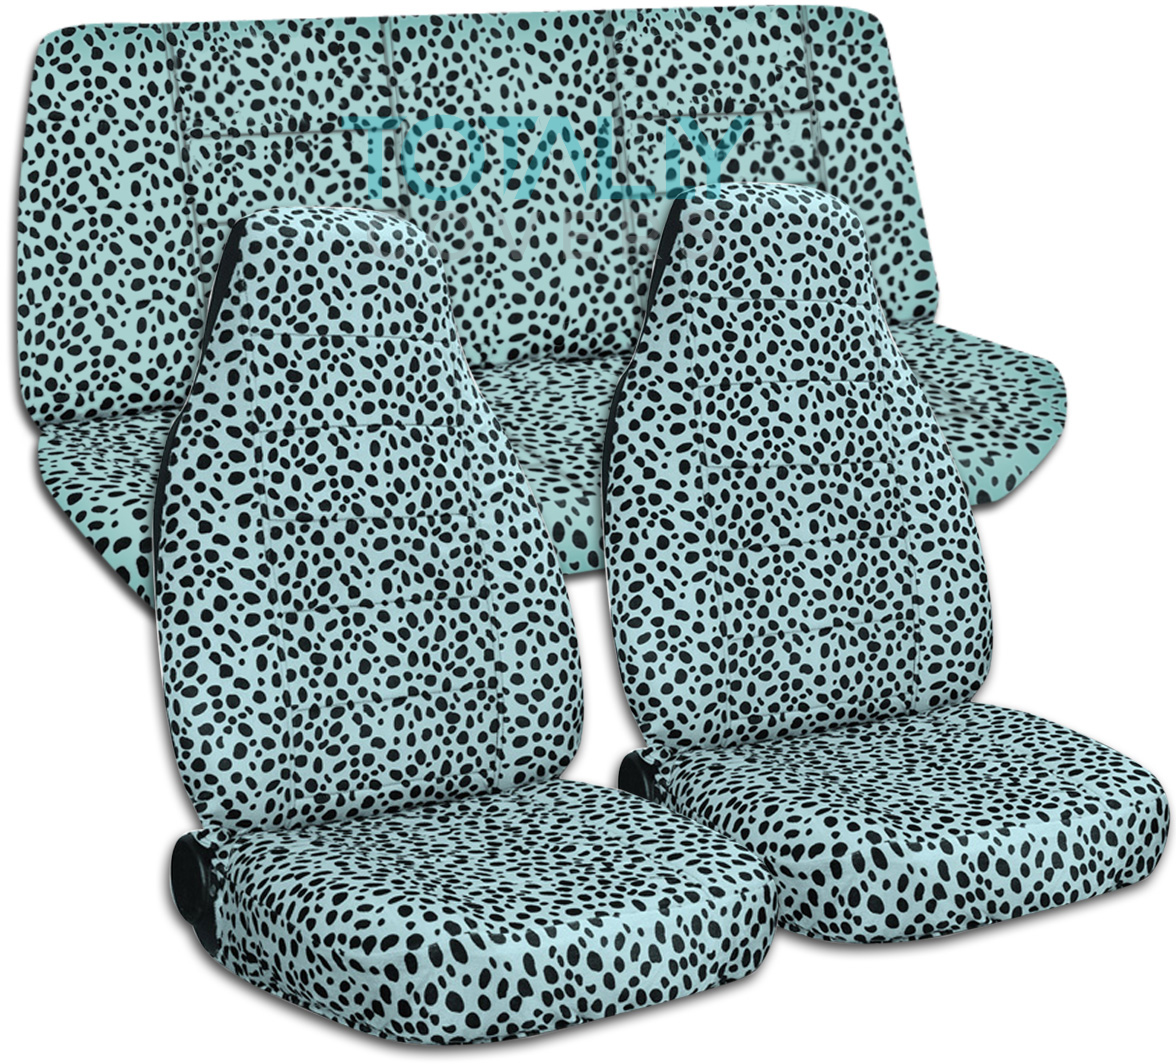 Animal Print Car Seat Covers Zebra Cow Leopard Tiger